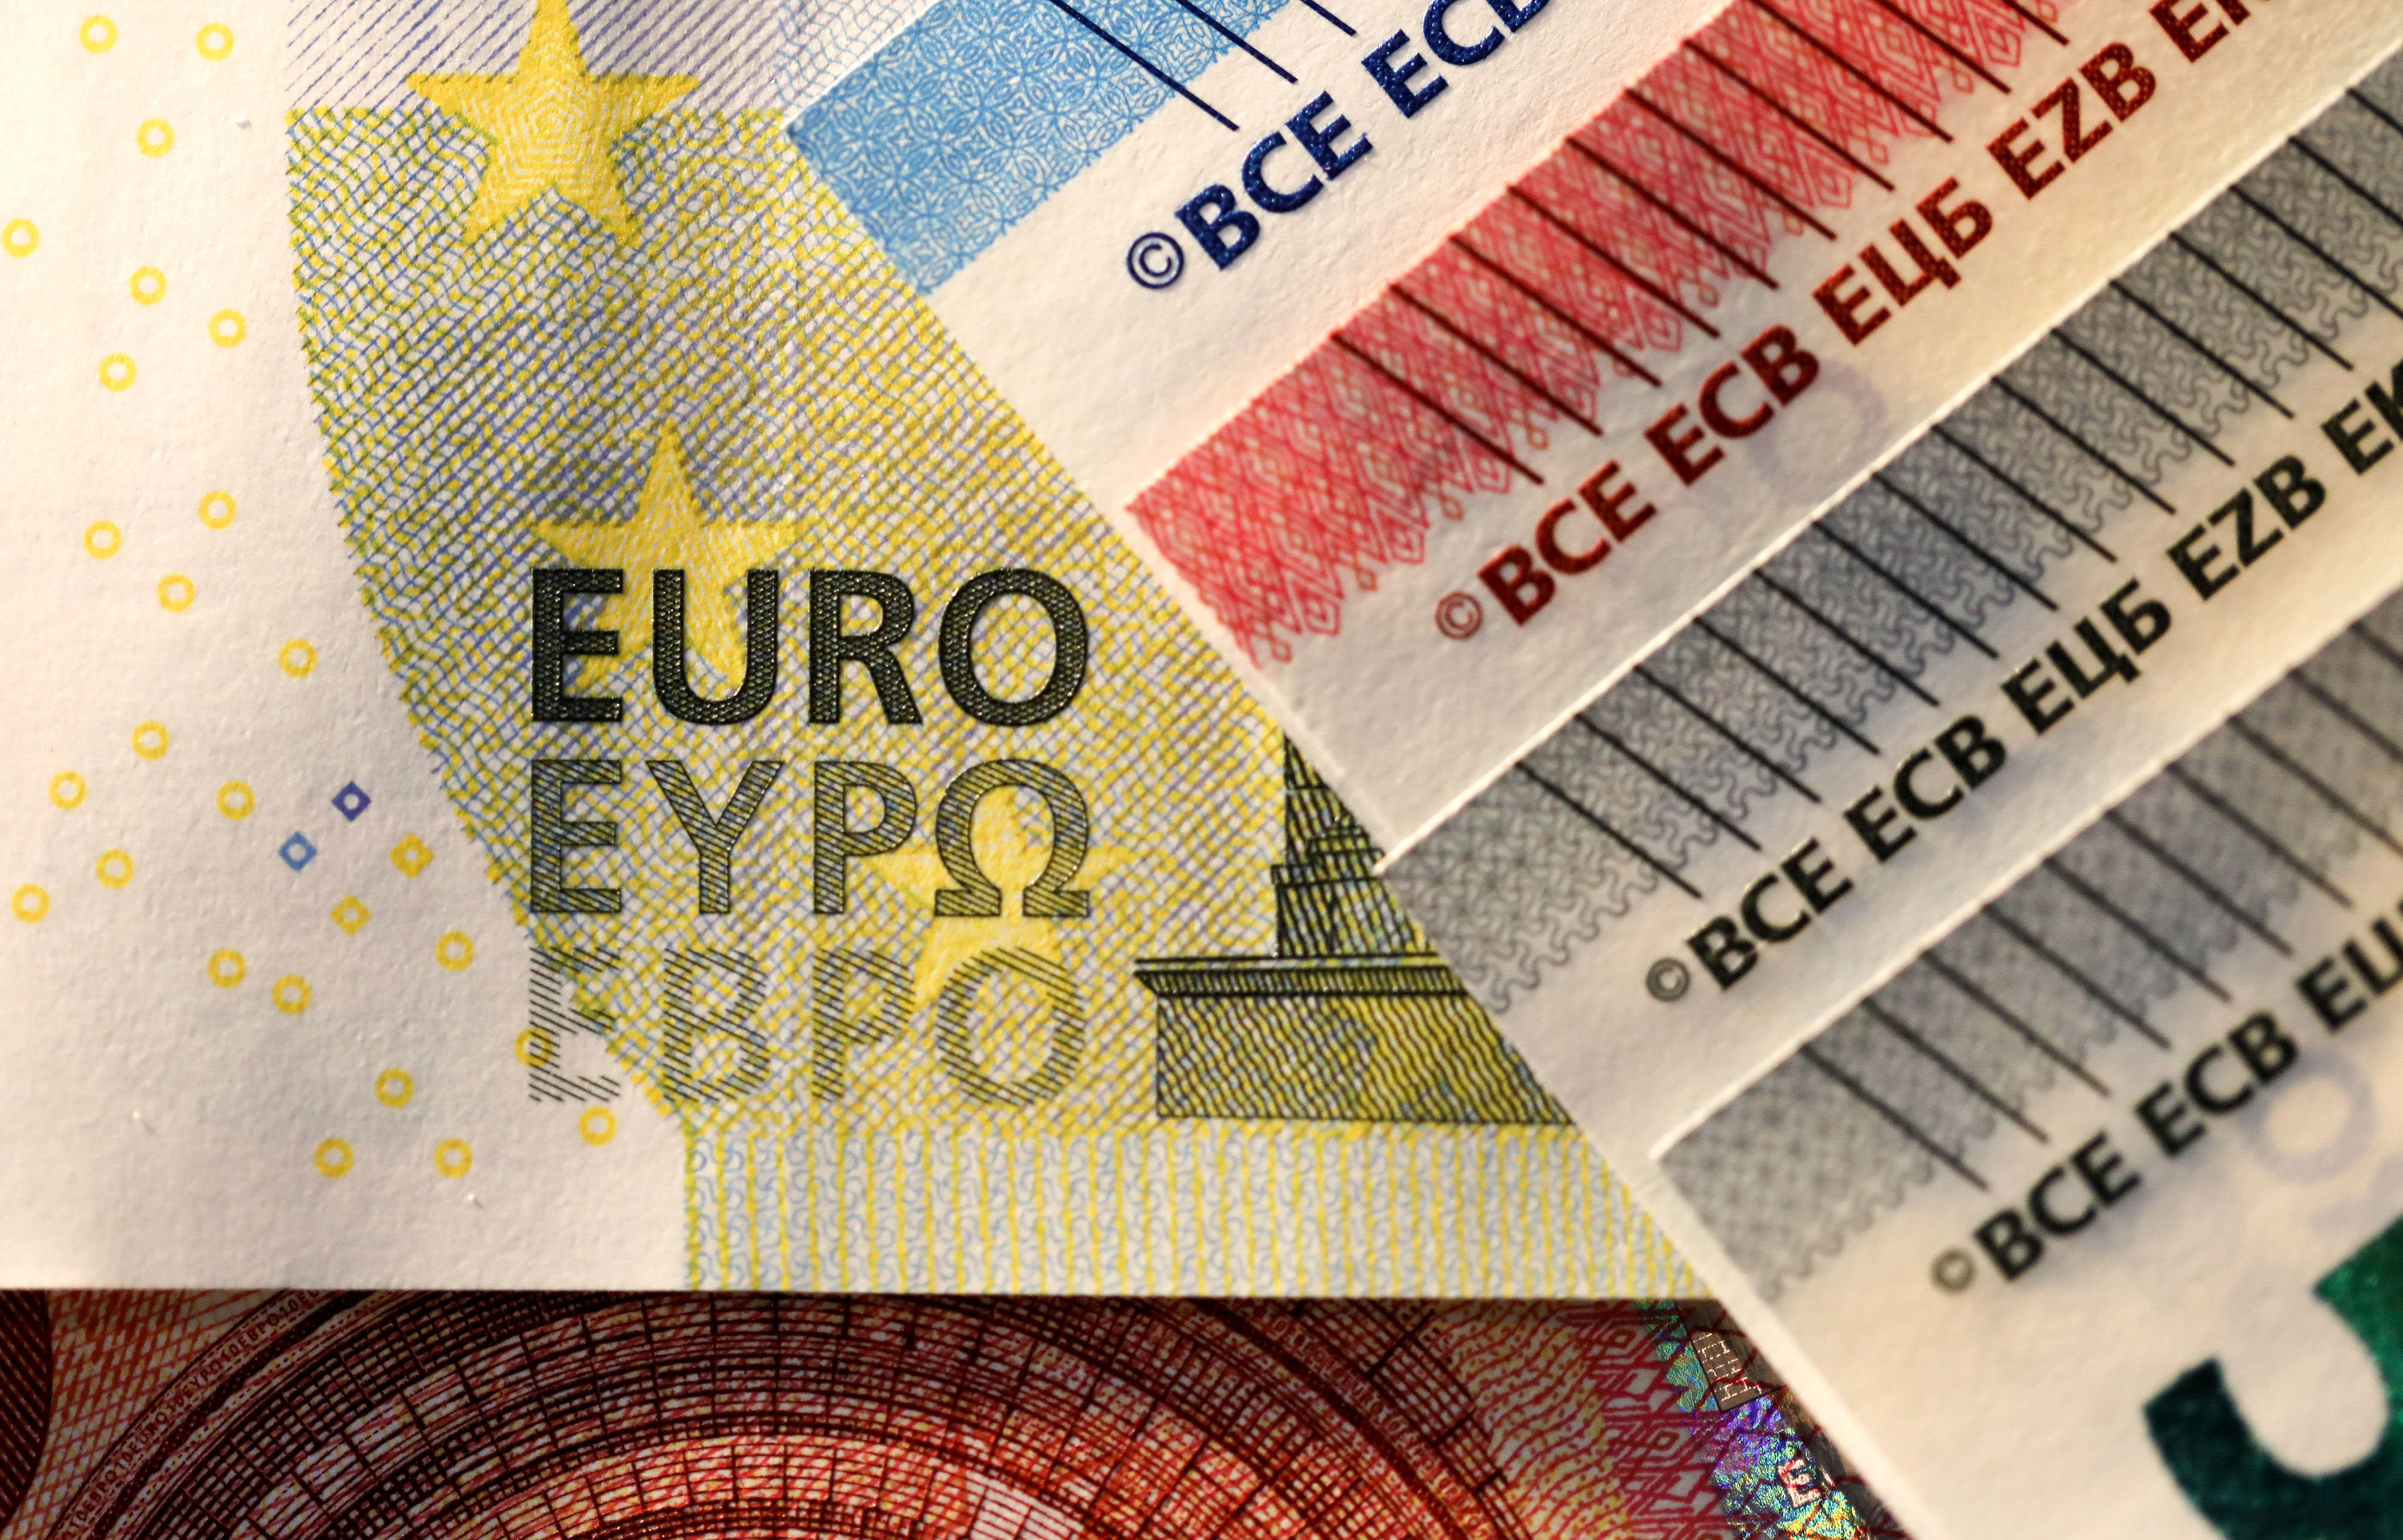 Improving economy can boost Eurozone shares